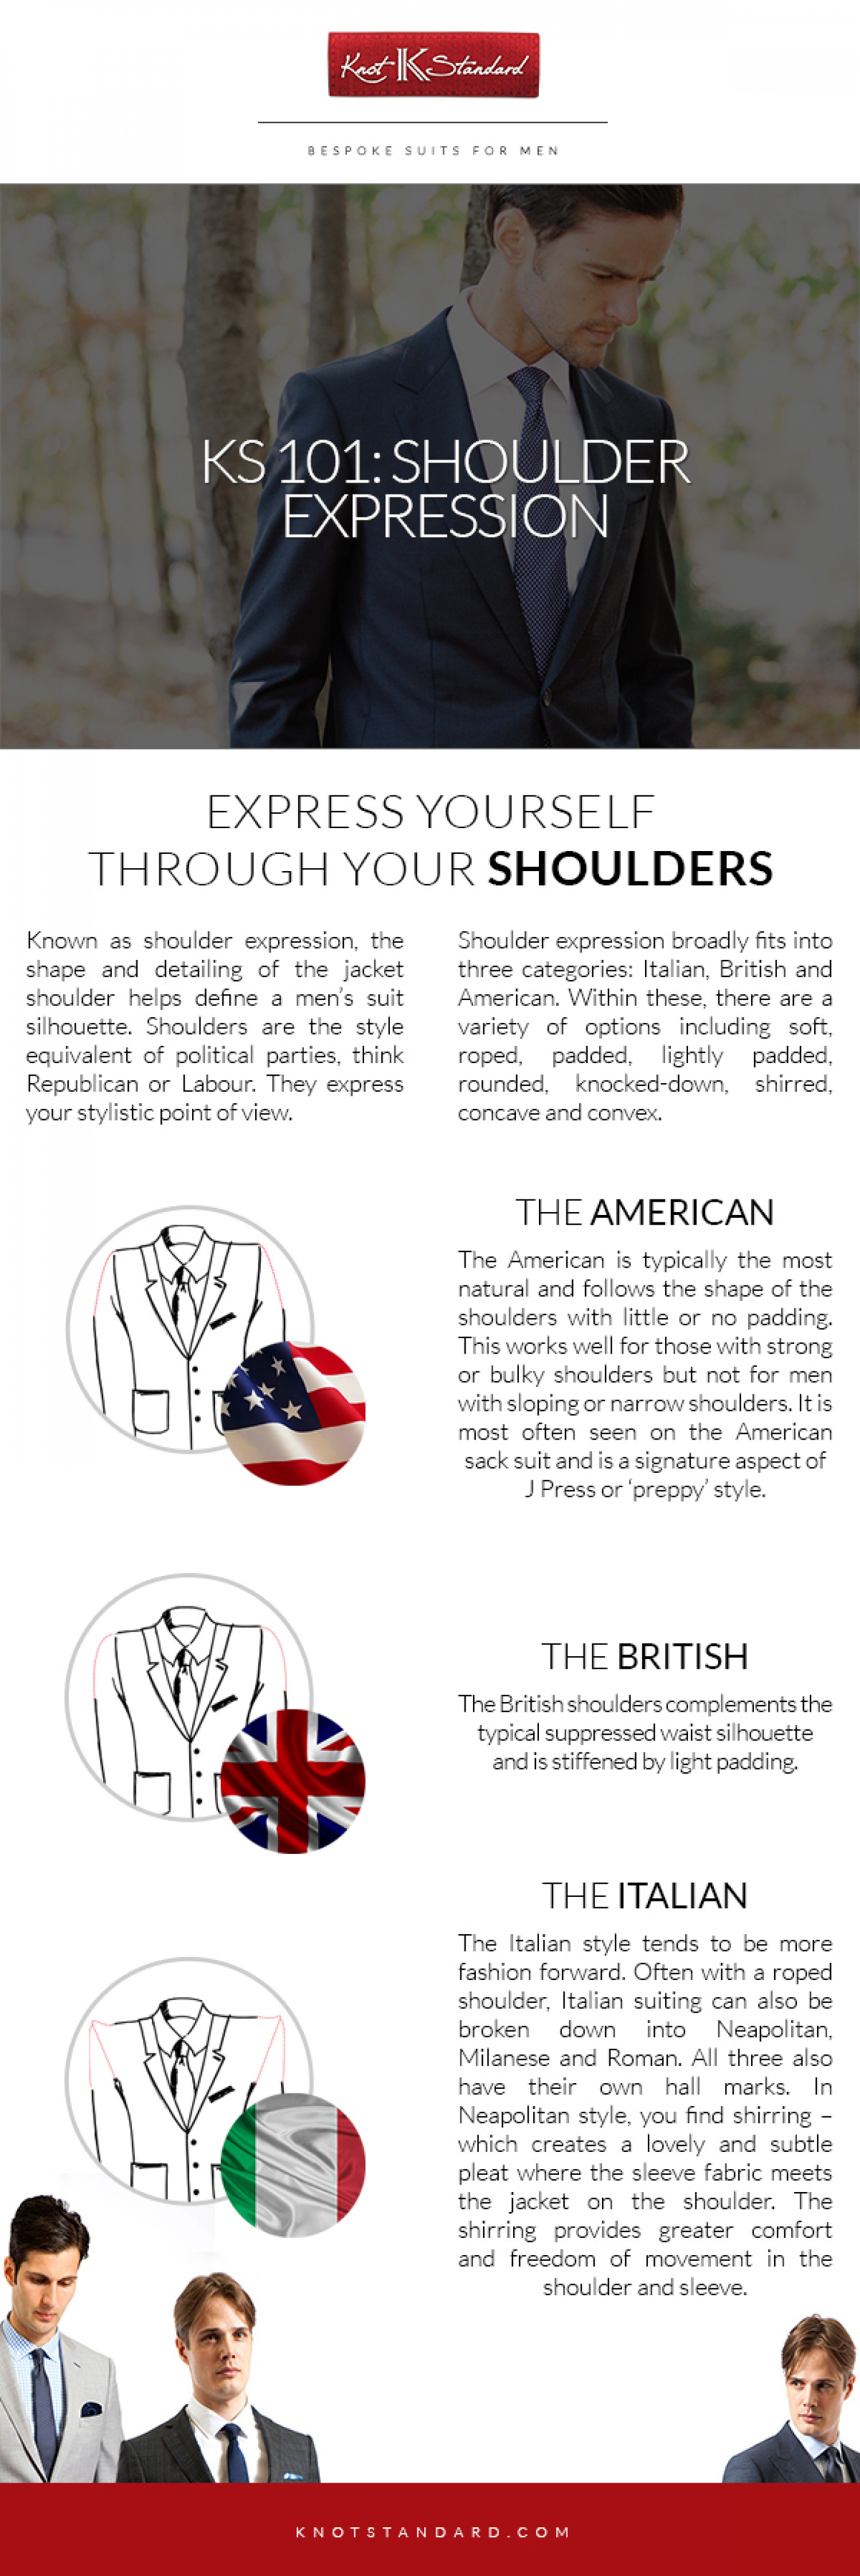 Shoulder Expression Infographic